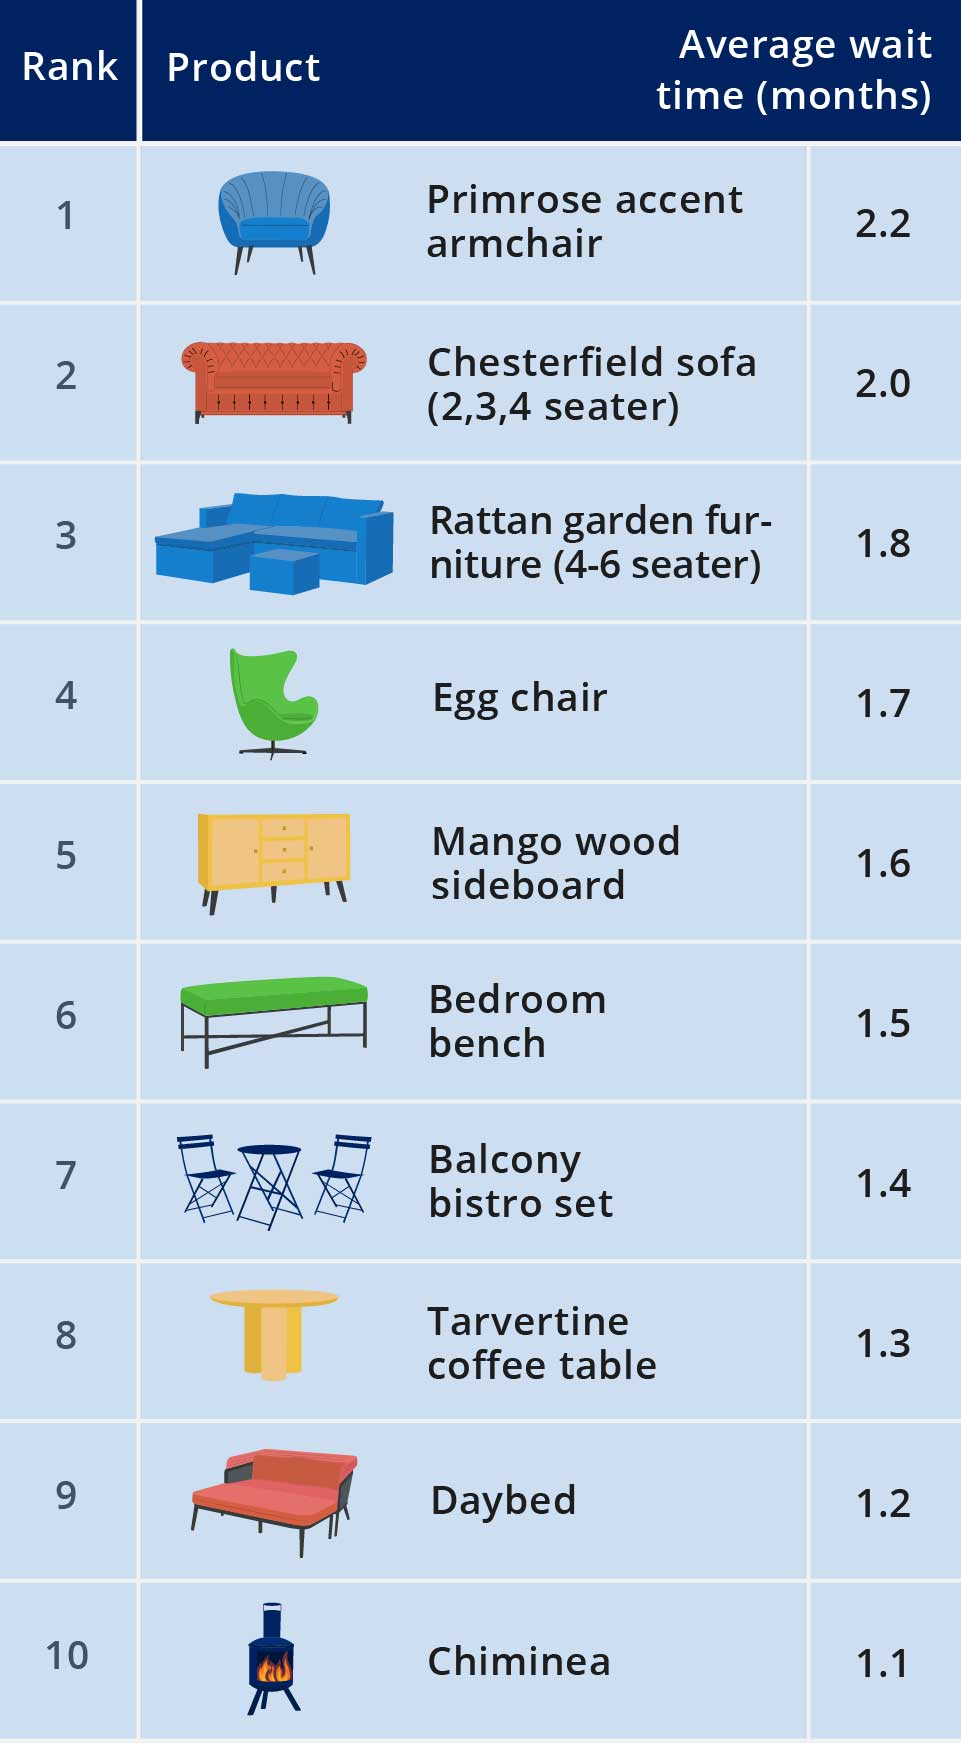 Average wait time for in demand furnishings